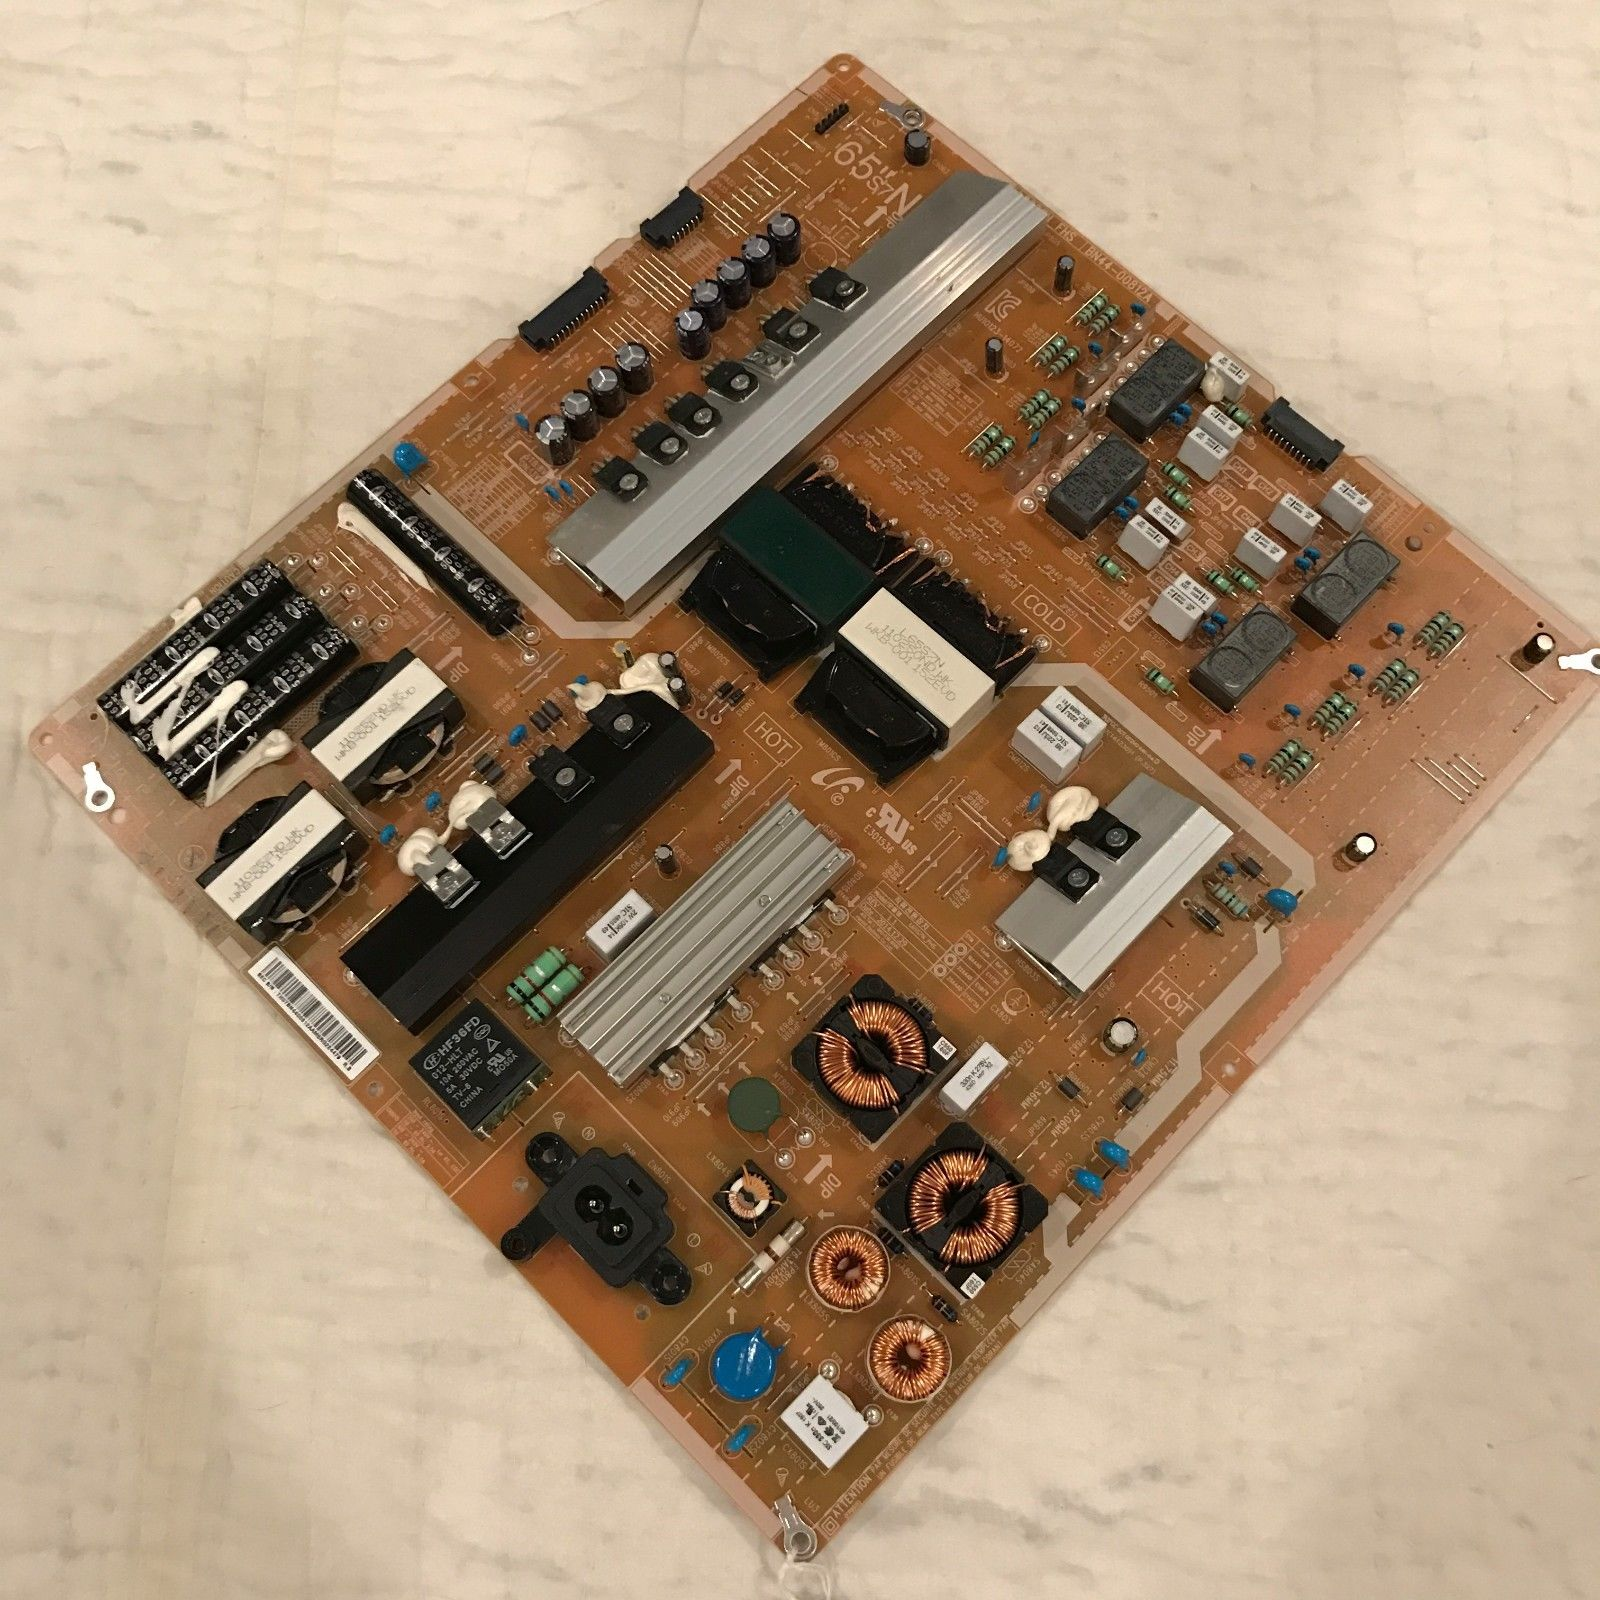 SAMSUNG BN44-00812A POWER SUPPLY BOARD FOR UN65JU7100 AND OTHER